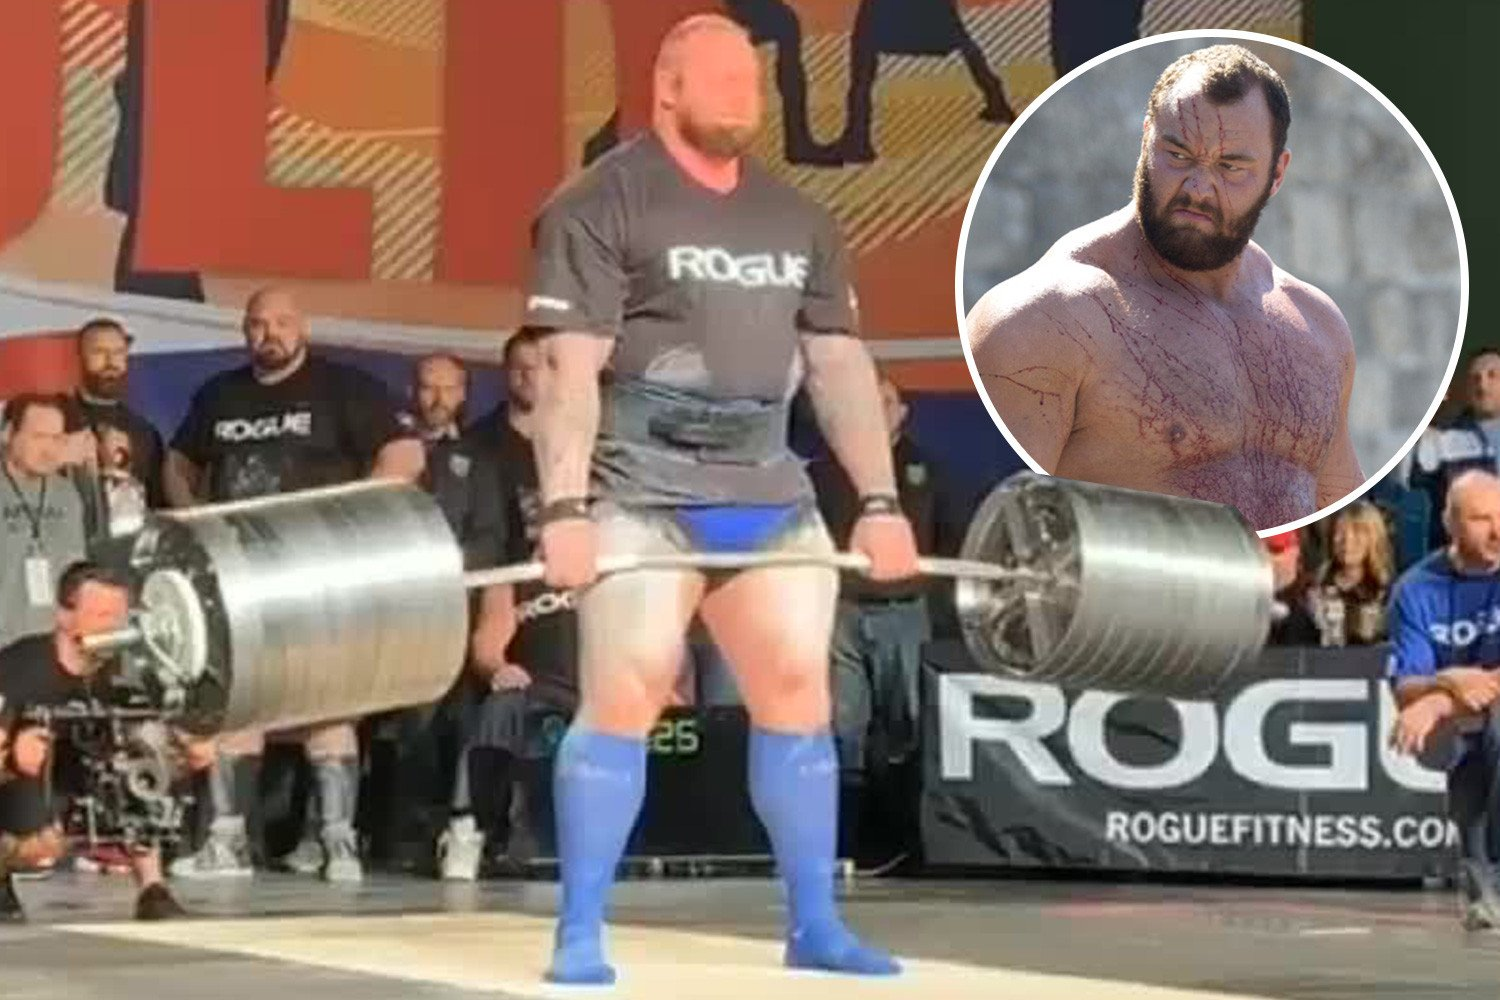 Watch as Game of Thrones star 'The Mountain' breaks his own